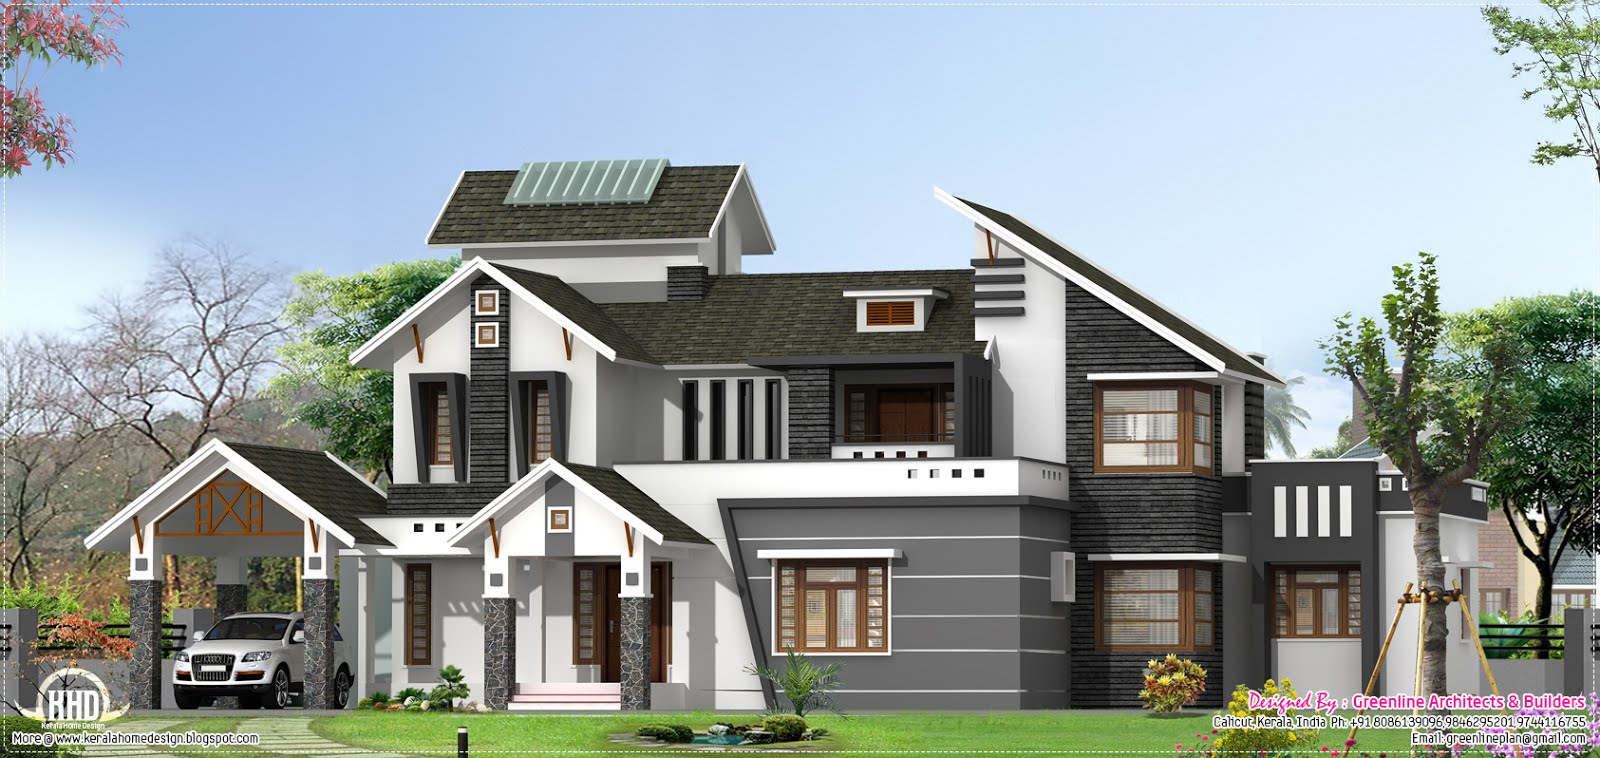 Modern 5 bedroom home design kerala home design and for House designers